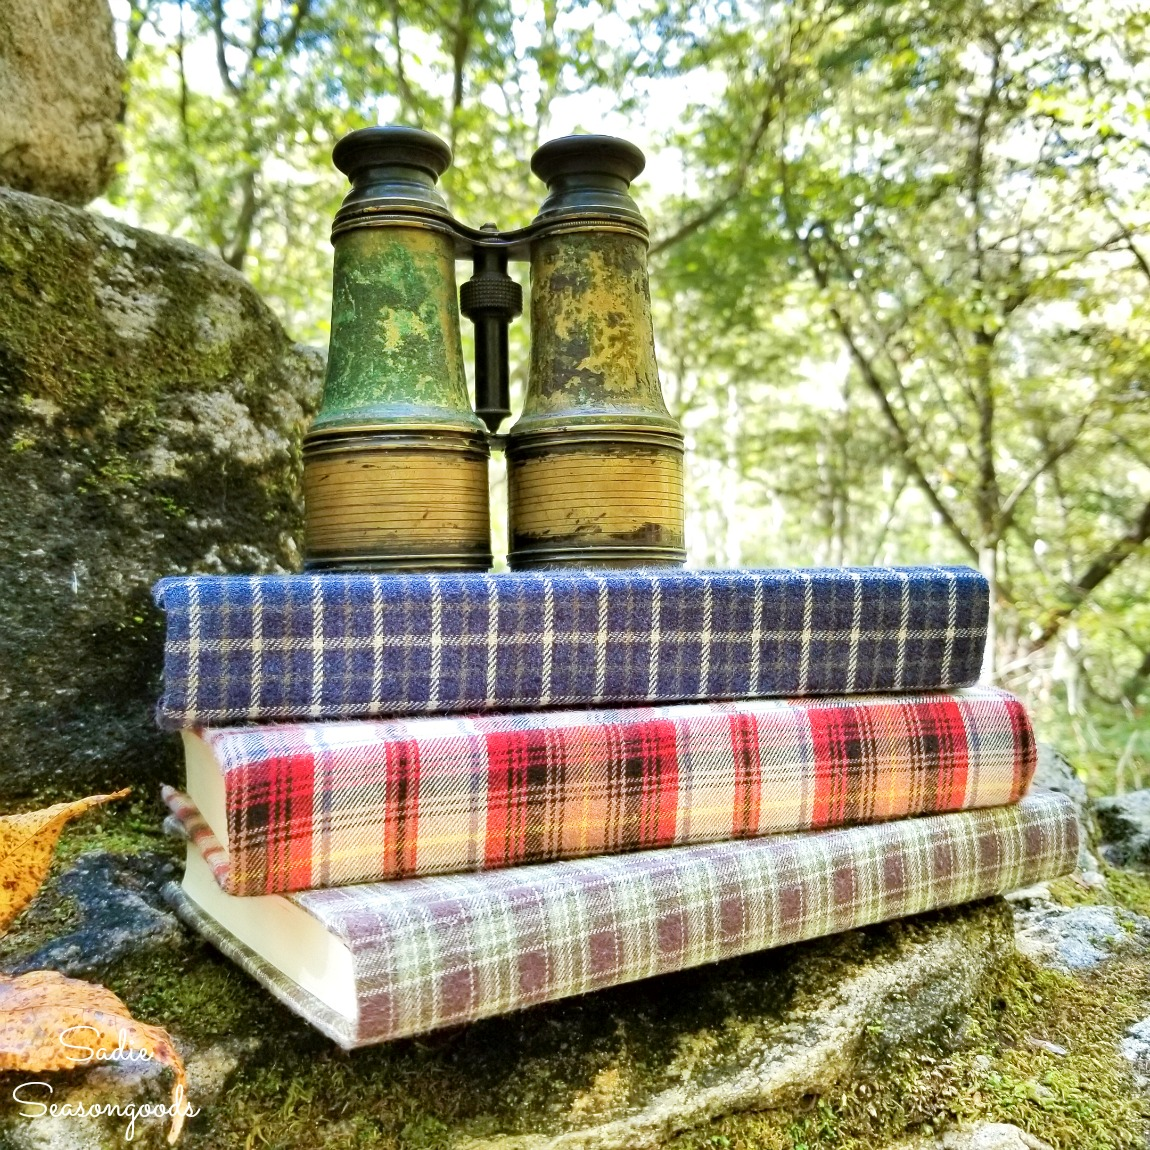 Book Decor with Flannel Shirts for Cozy Home Decor